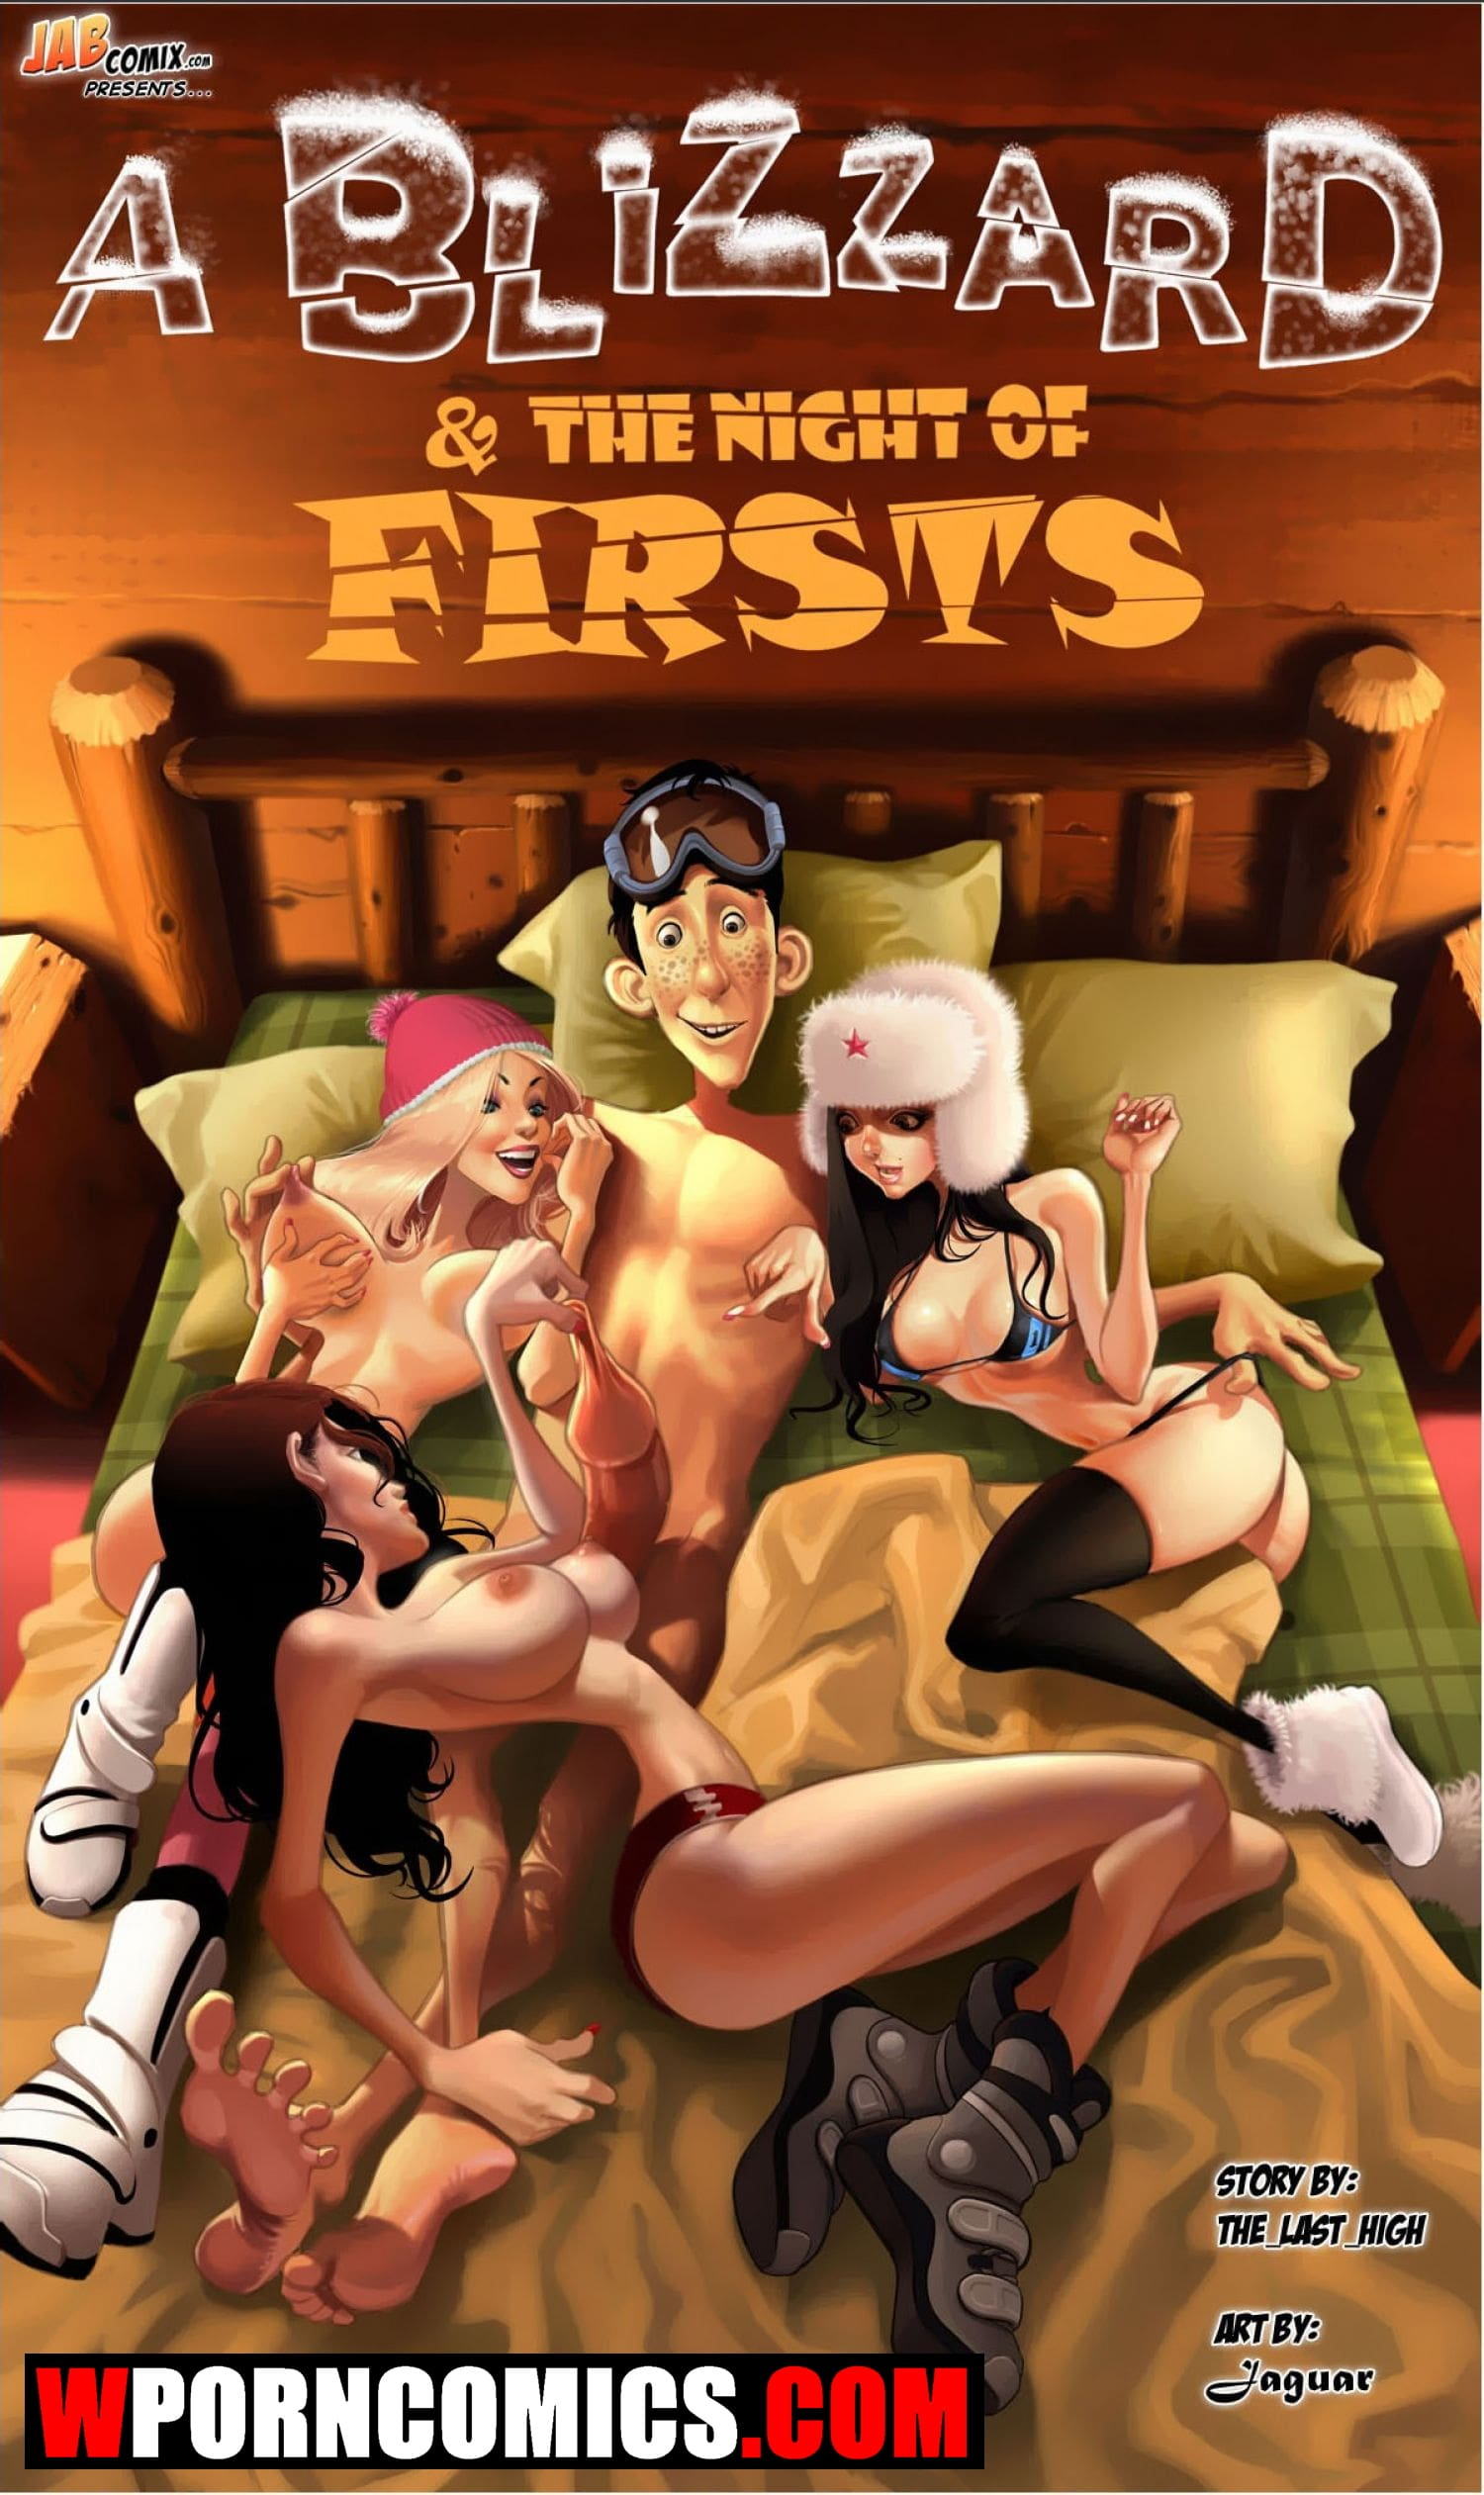 Porn comic A Blizzard and The Night Of Firsts.